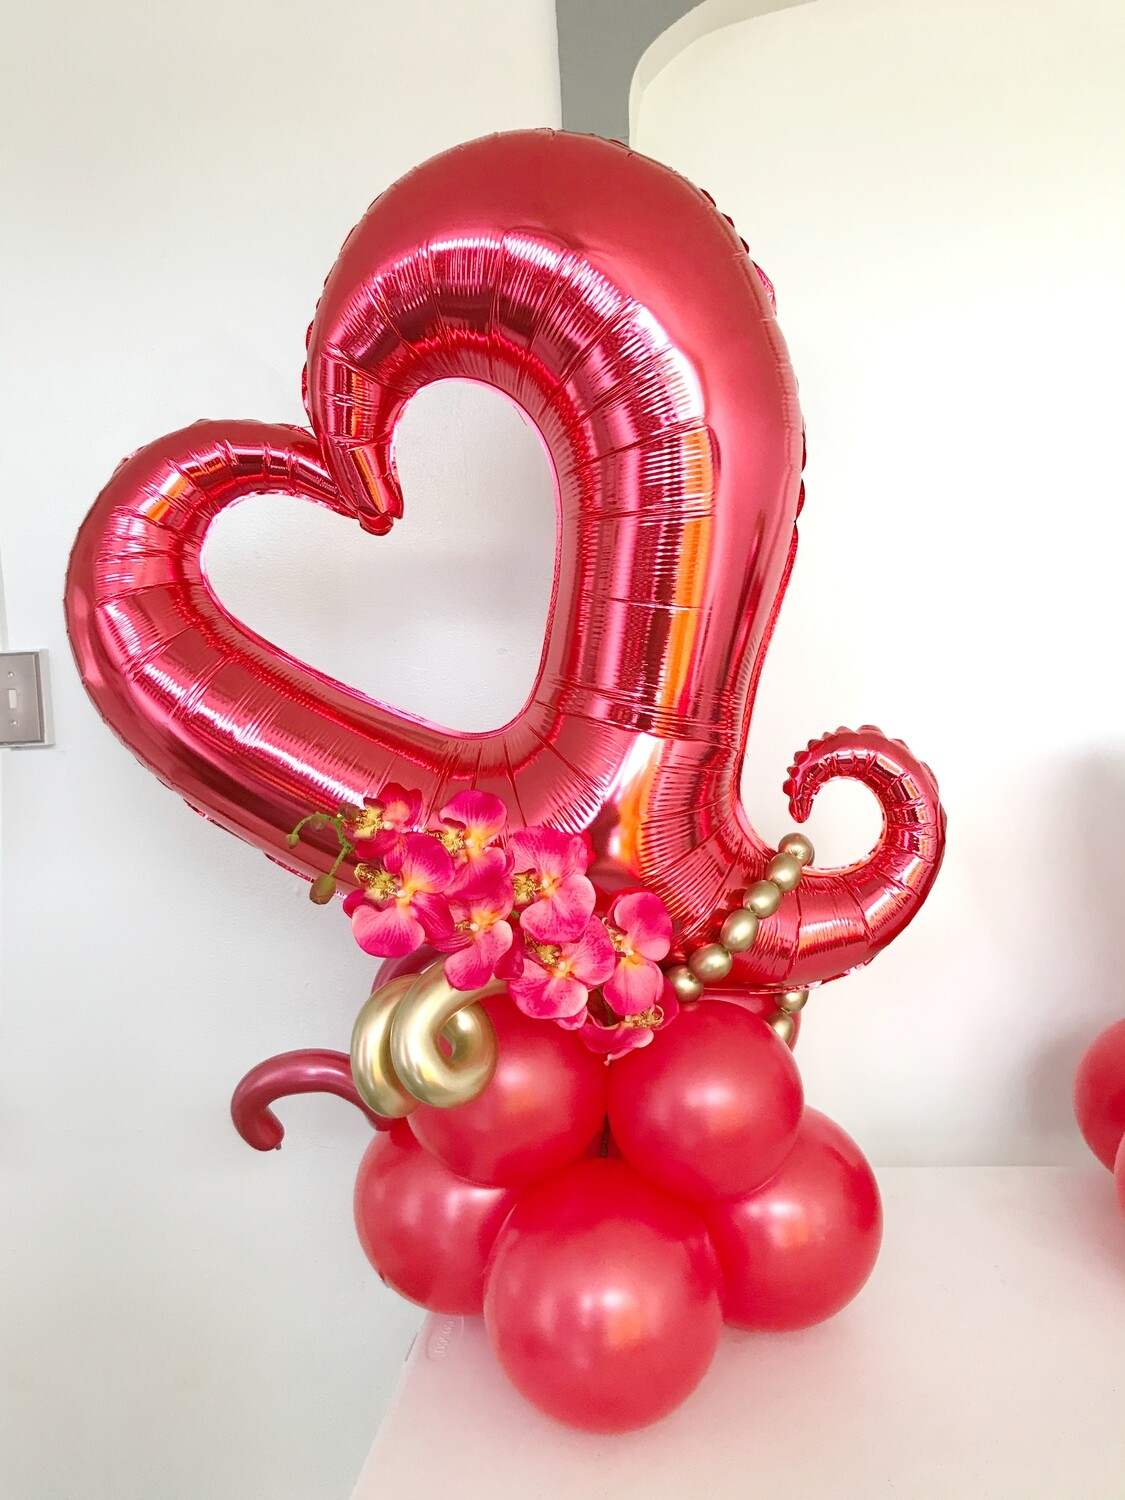 Giant open heart balloon bouquet with Orchid. Air filled.